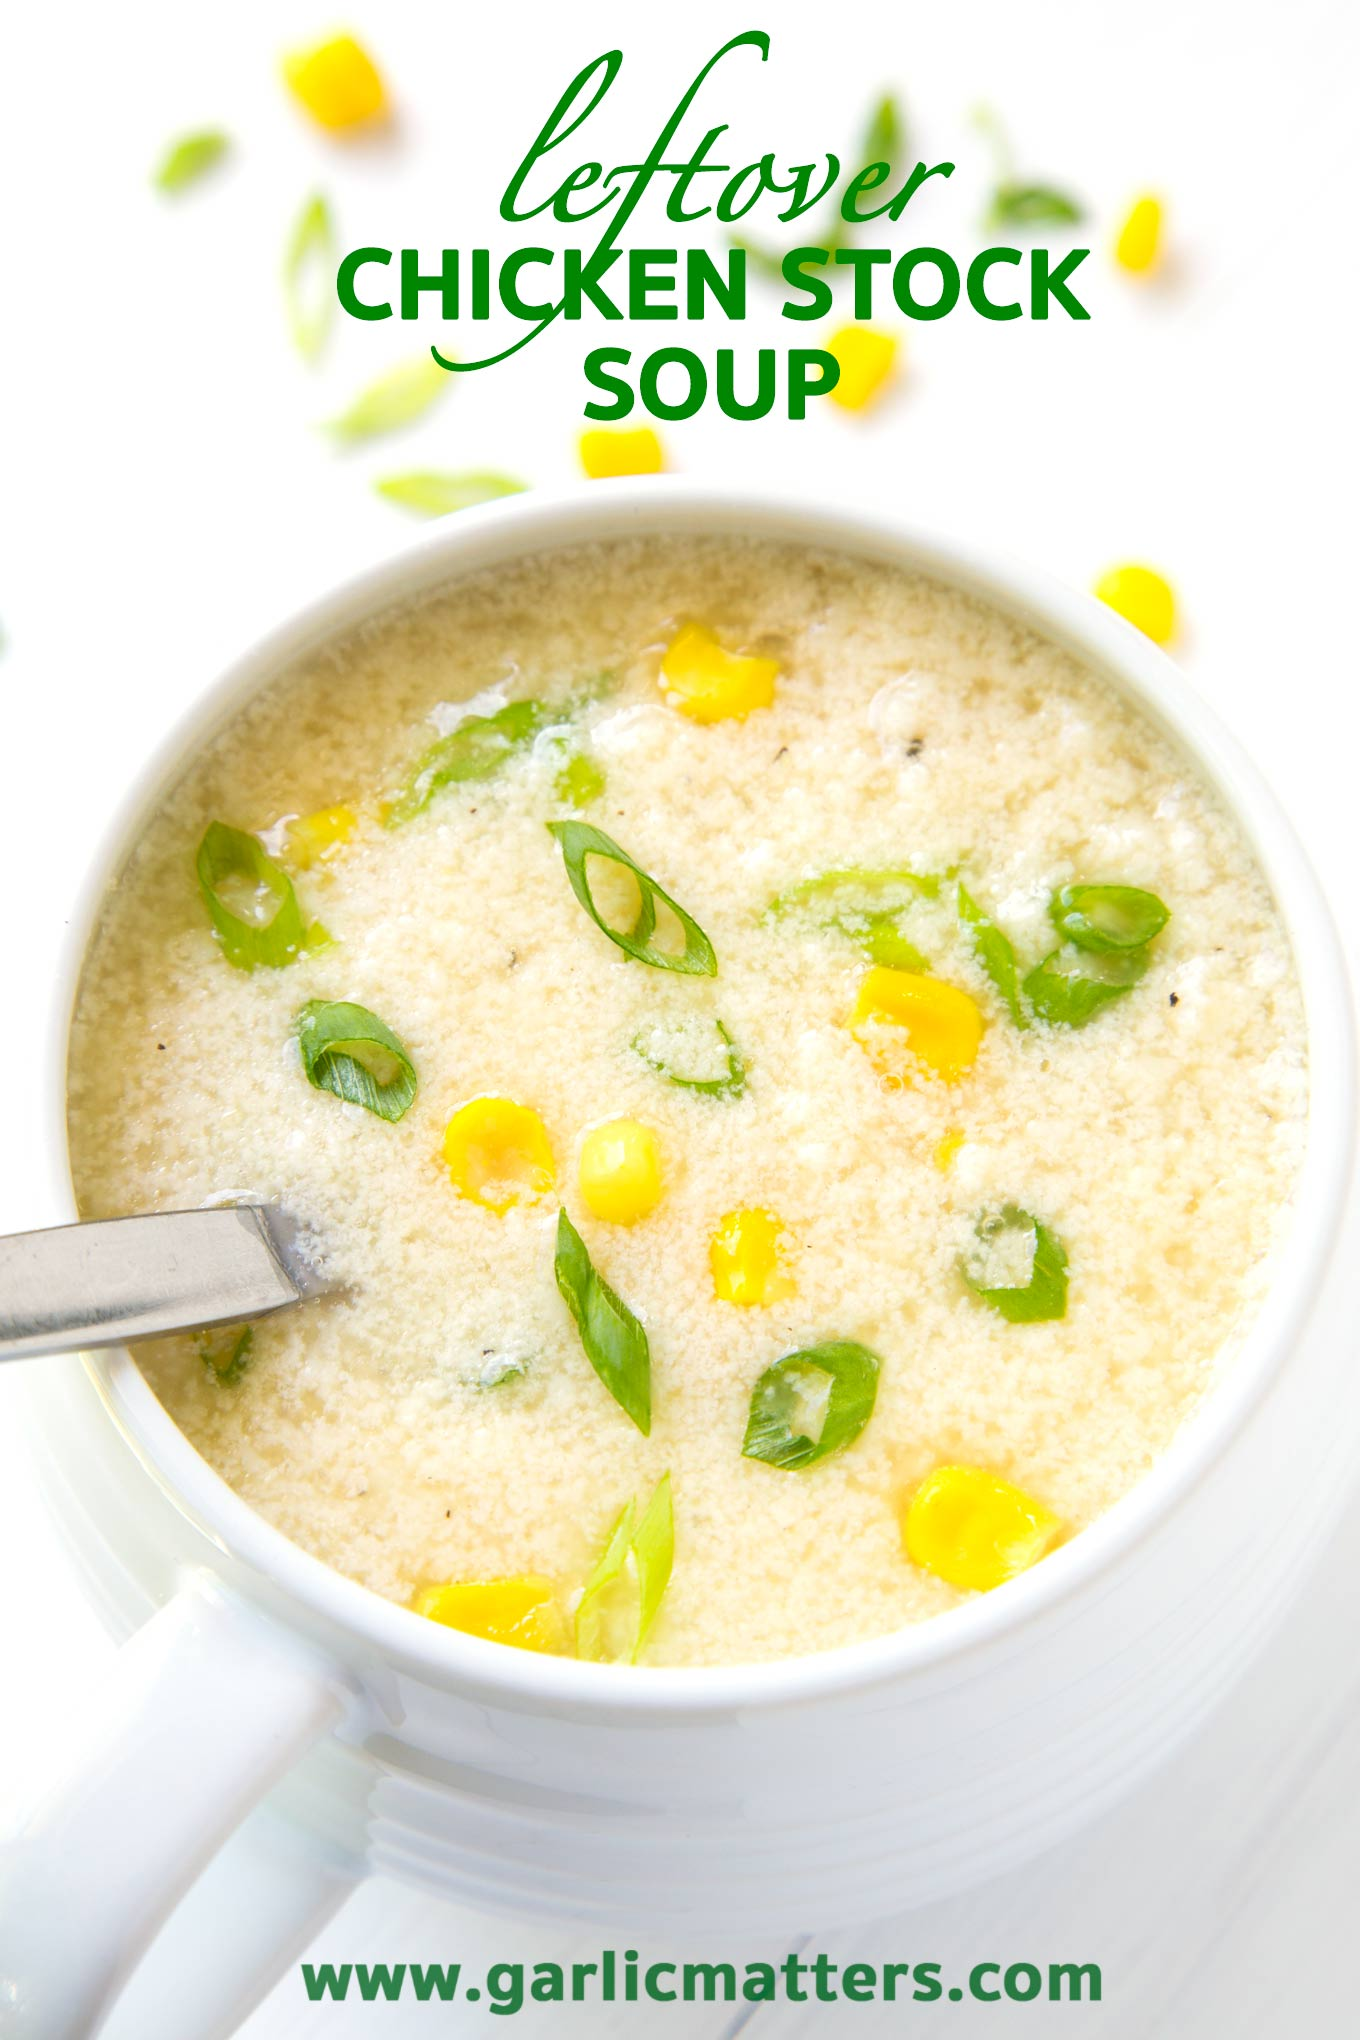 Leftover Chicken Stock Soup Recipe is an easy, nutritious and budget friendly meal - ready in under 1 hour.